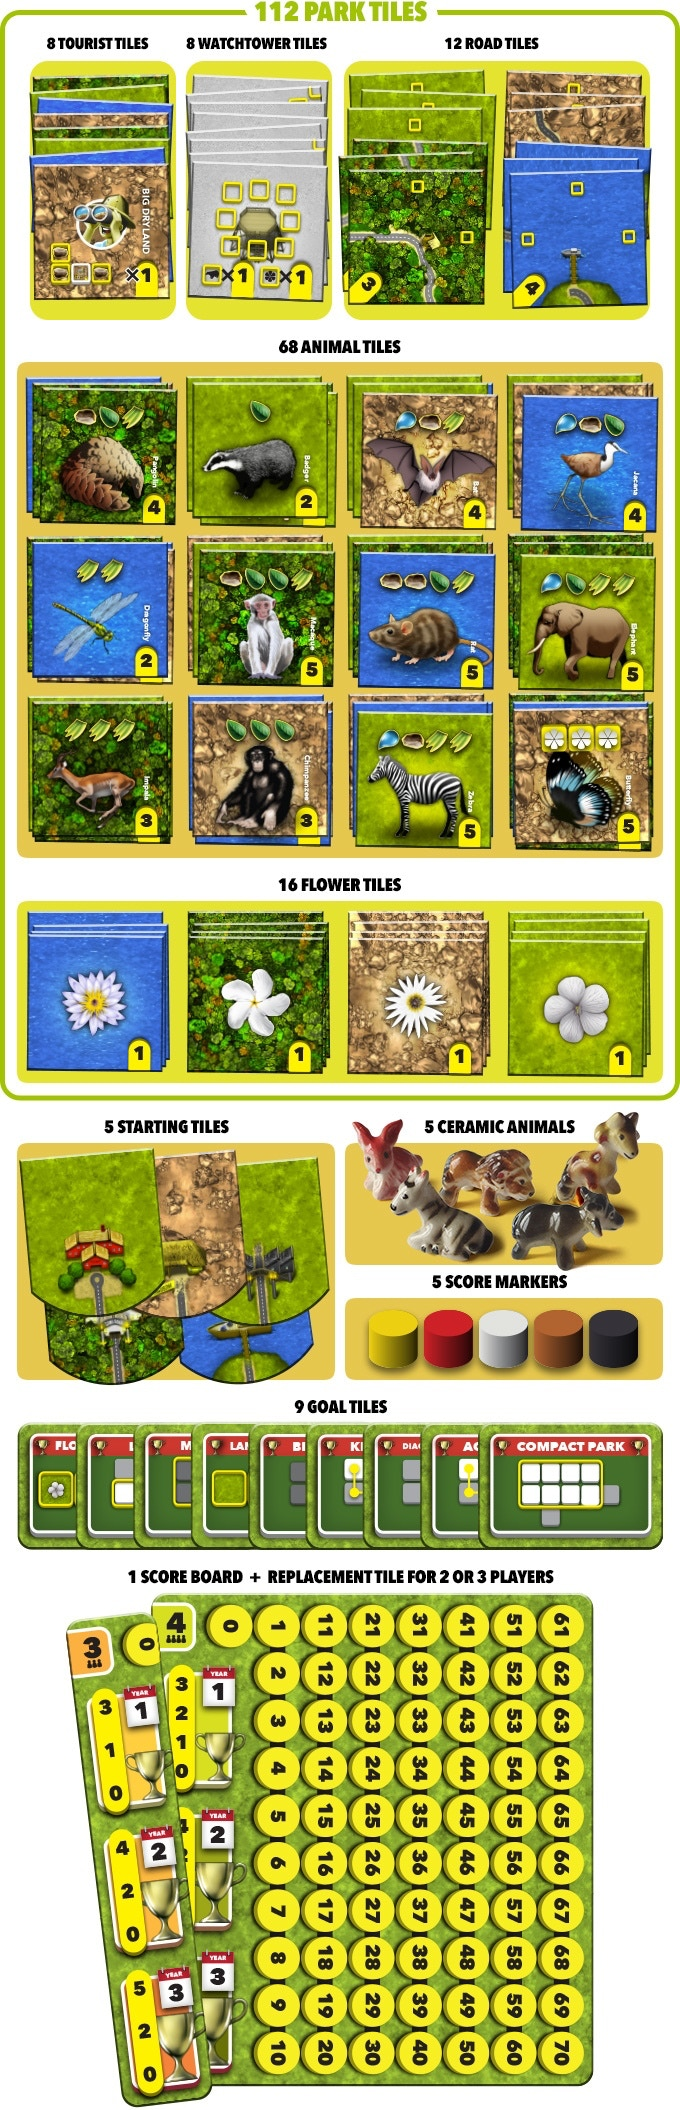 The ceramic animals match the player color score markers and entrance buildings